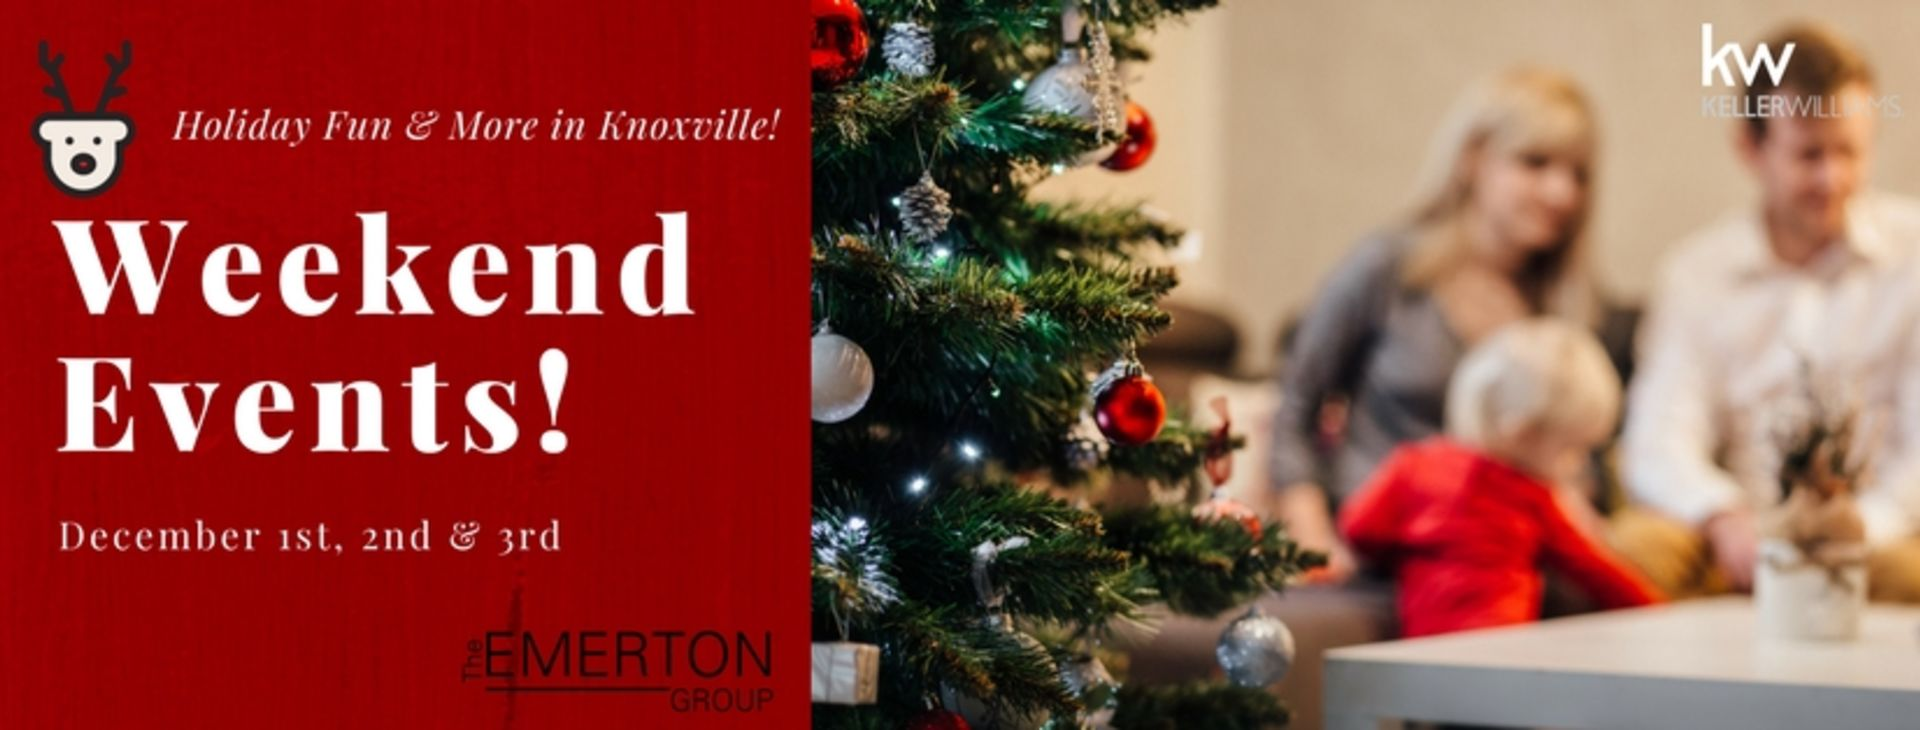 What to Do in Knoxville This Weekend! December 1st, 2nd, & 3rd